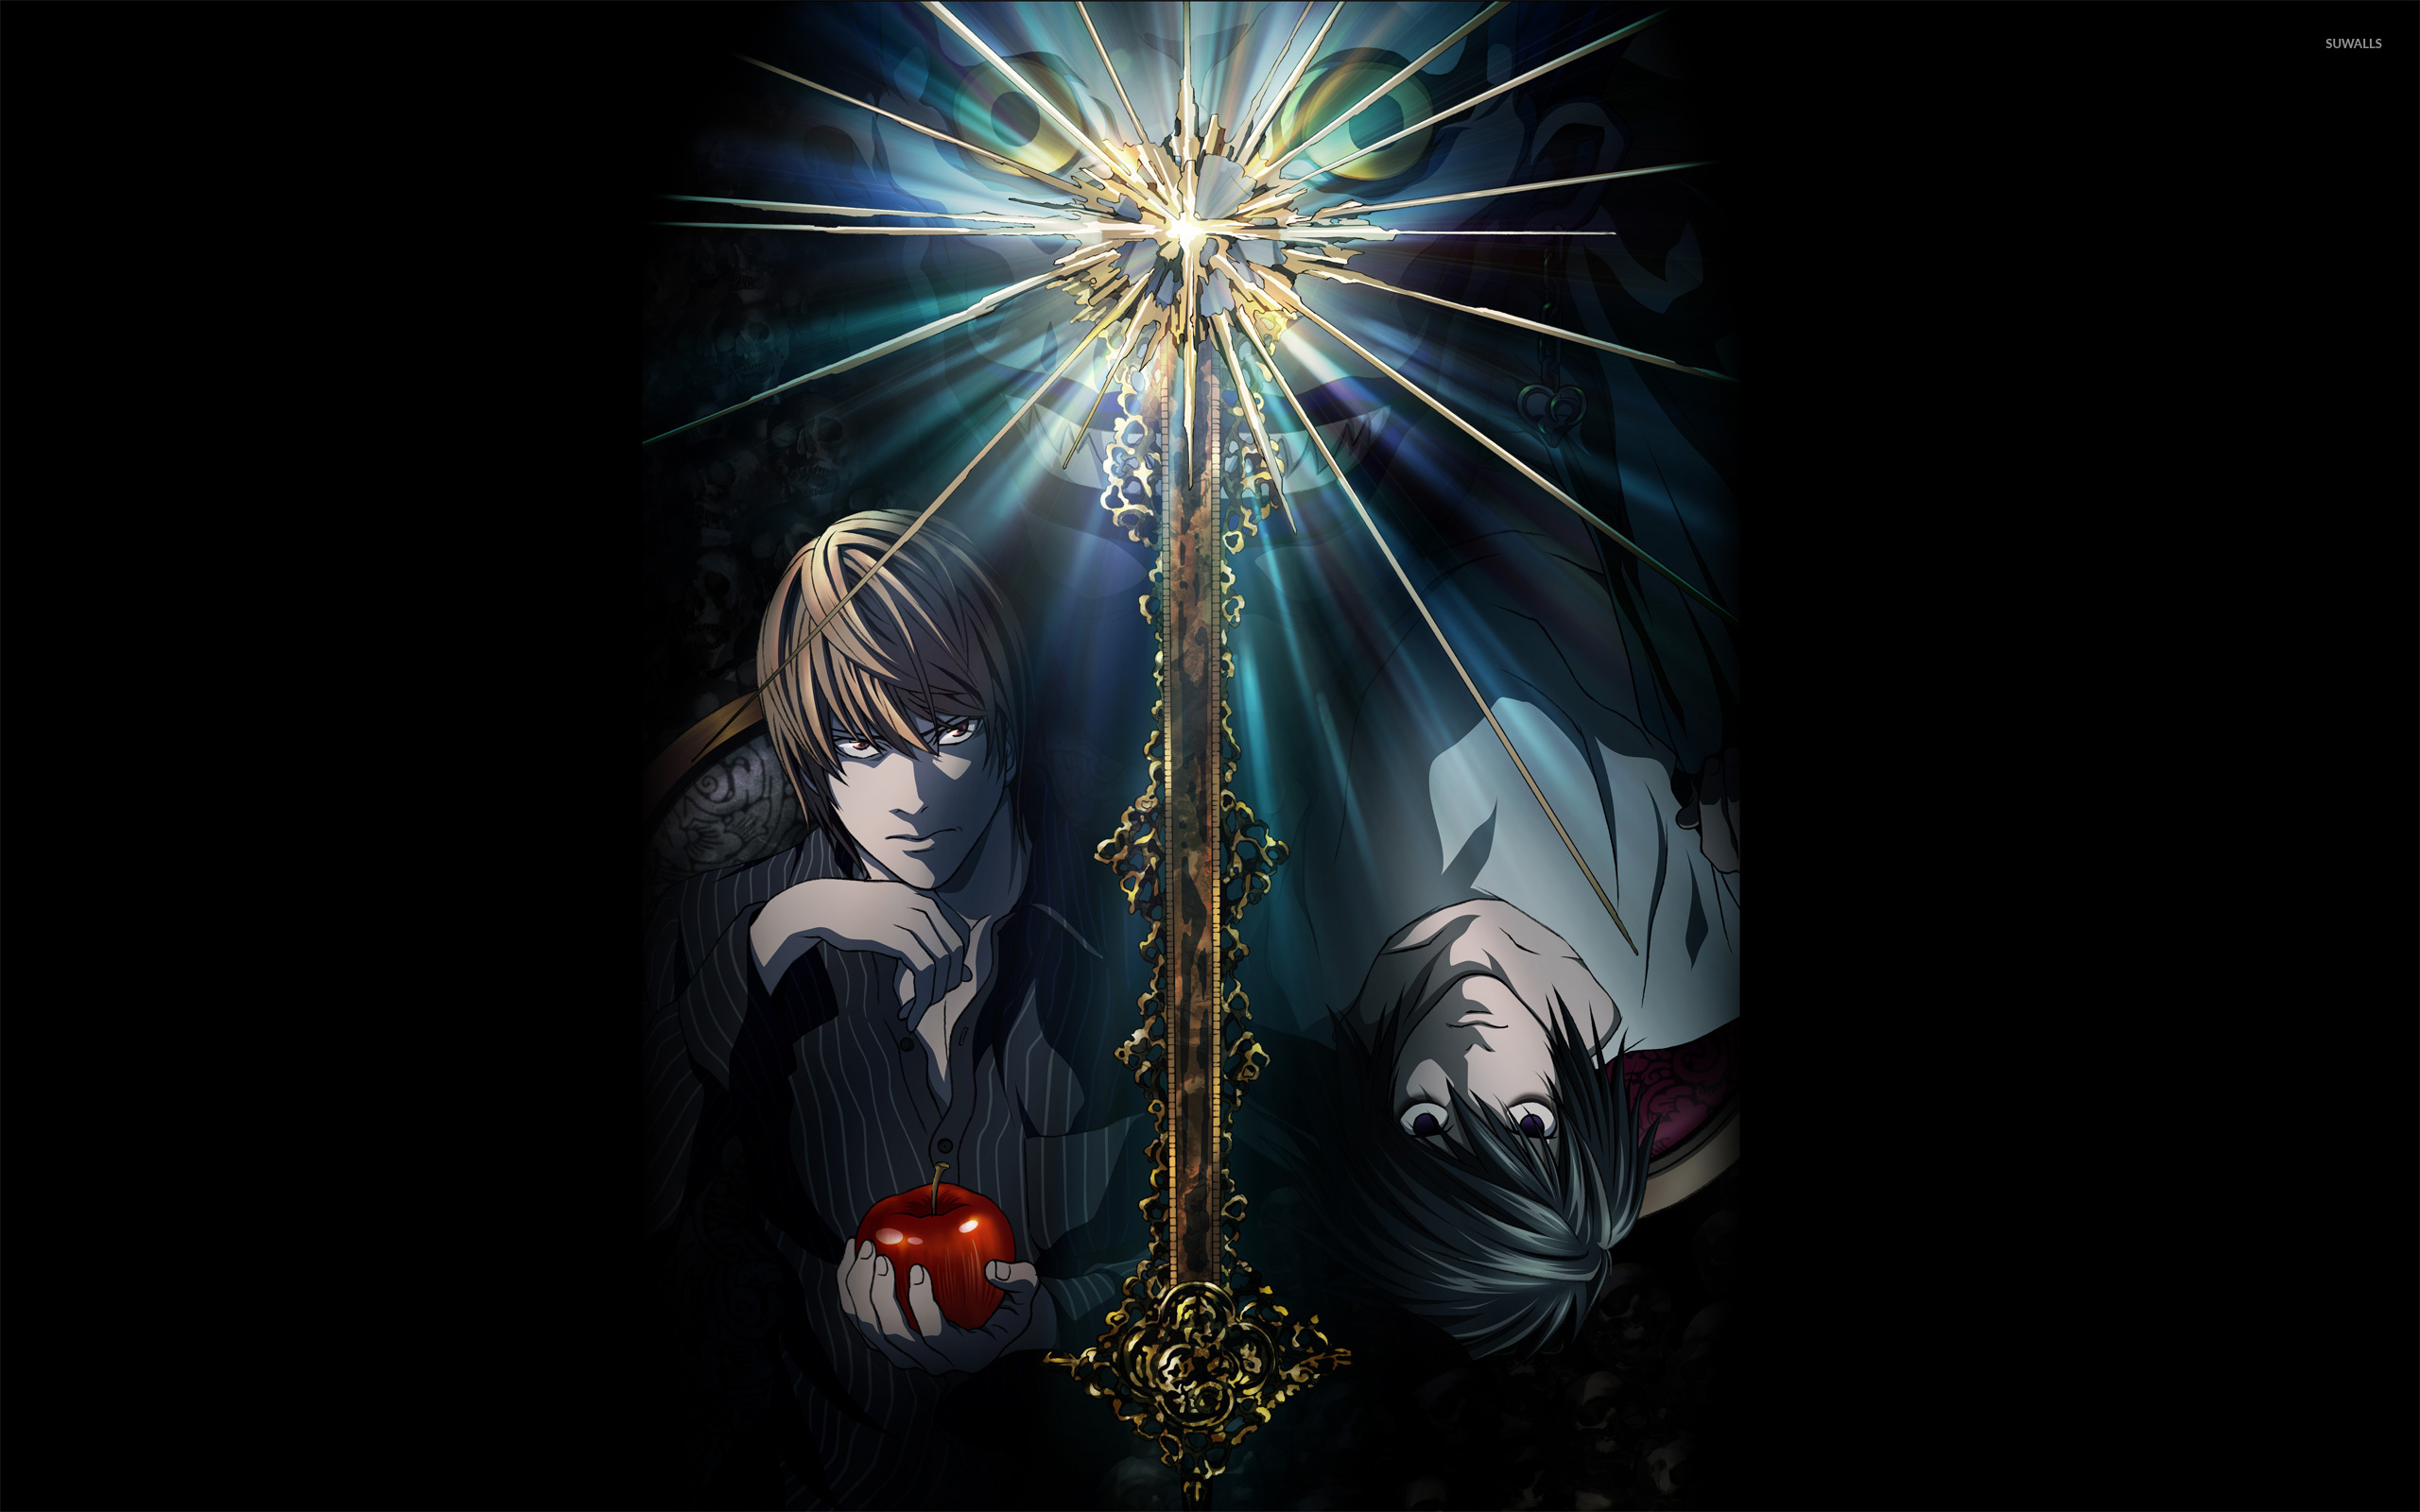 Death Note 15 Wallpaper Anime Wallpapers 5748